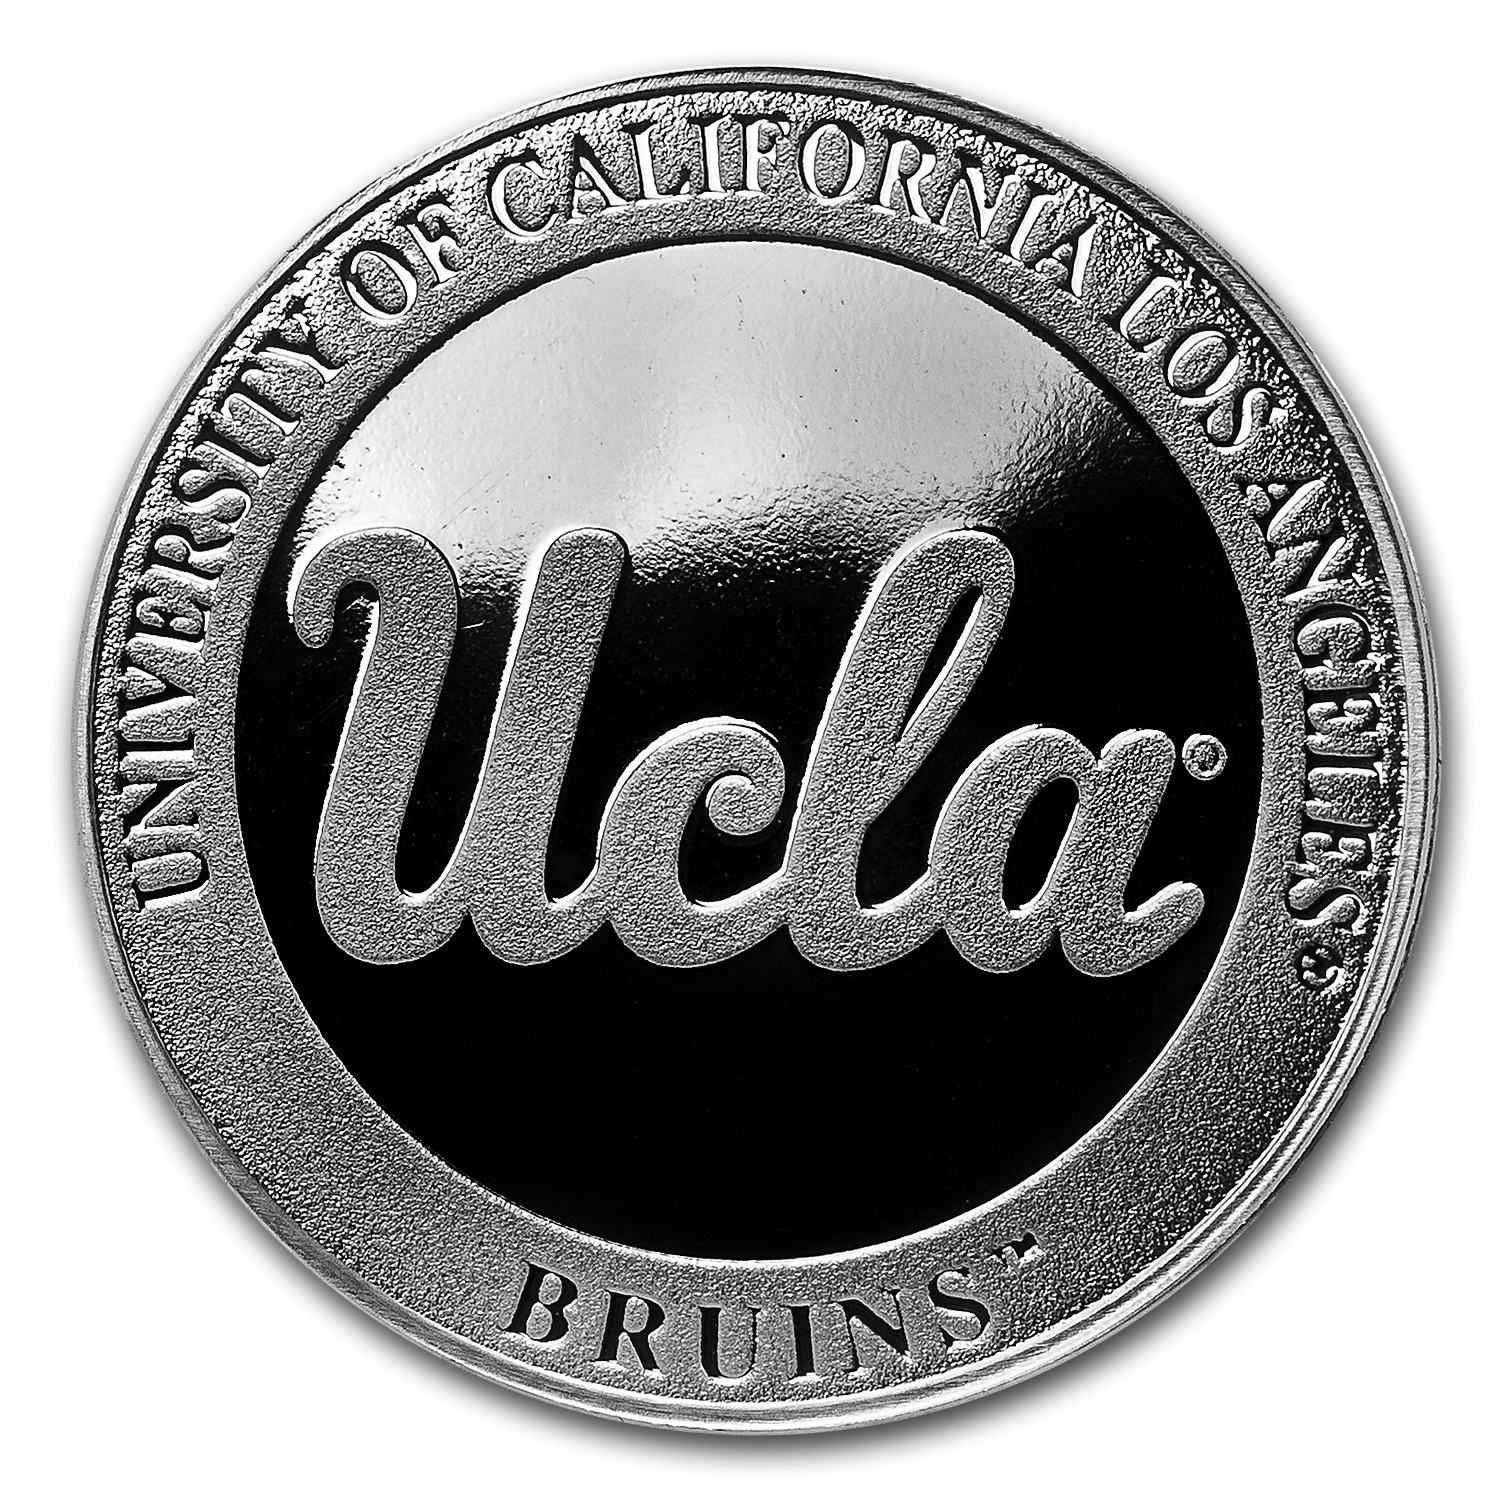 1 oz Silver Round - University of California Los Angeles